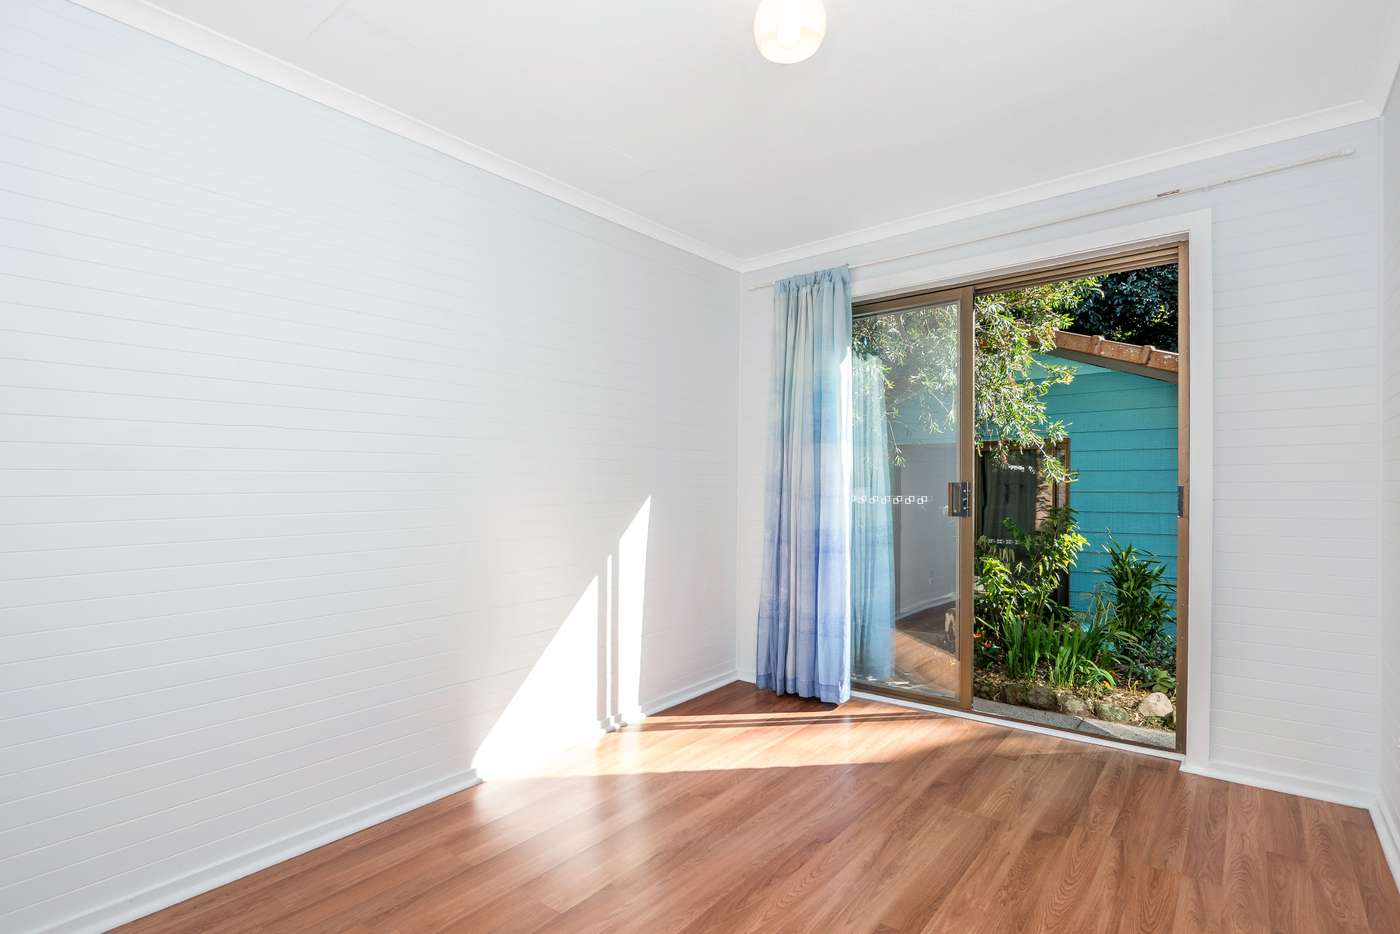 Sixth view of Homely house listing, 51 Helen Street, South Golden Beach NSW 2483